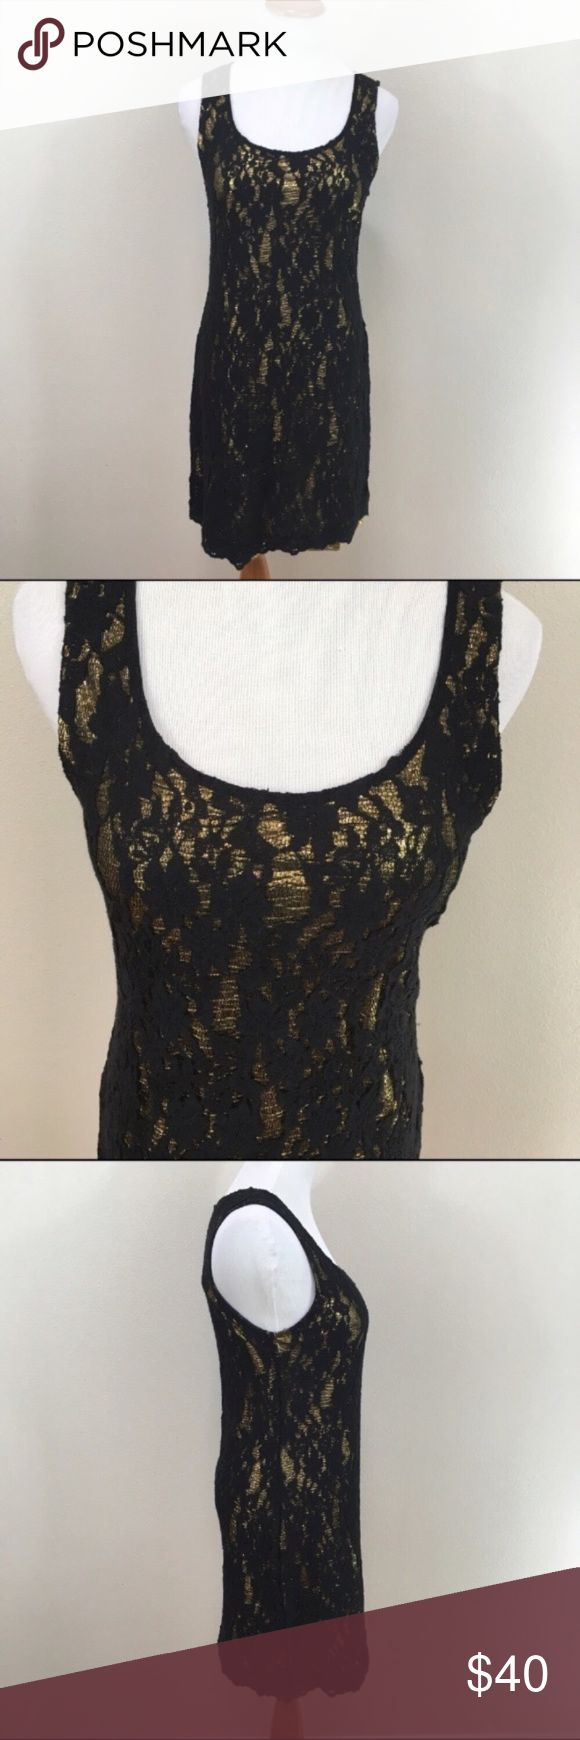 """NWT Miss Me Black Lace Gold Bodycon Dress NWT Miss Me Black Lace Gold Metallic Bodycon Dress Women's Small. Brand new with tags. Gold metallic underlay with black lace overlay. Stretch. Zip back. Clean and comes from smoke free home. Questions welcomed! Armpit to armpit: 15.75"""" Length: 33"""" Miss Me Dresses Midi"""